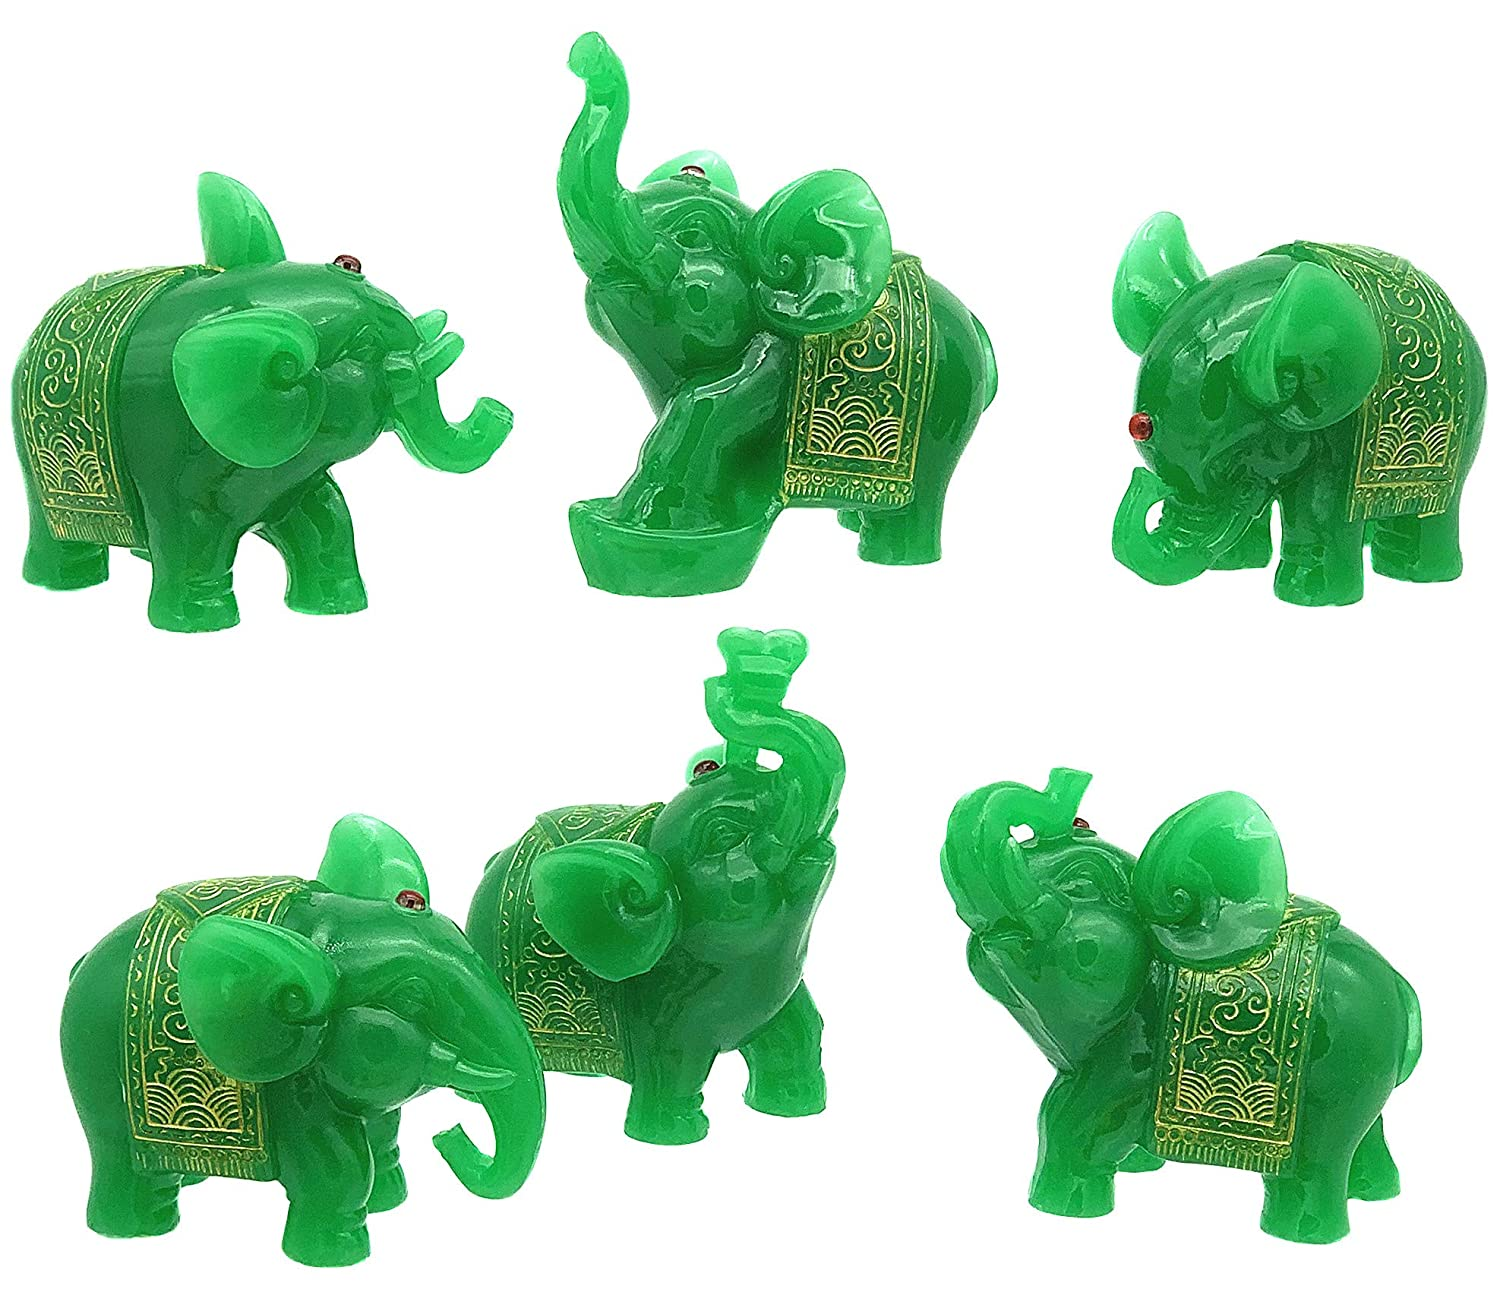 Amazon.com: Betterdecor - Juego de 6 estatuas de elefante de ...